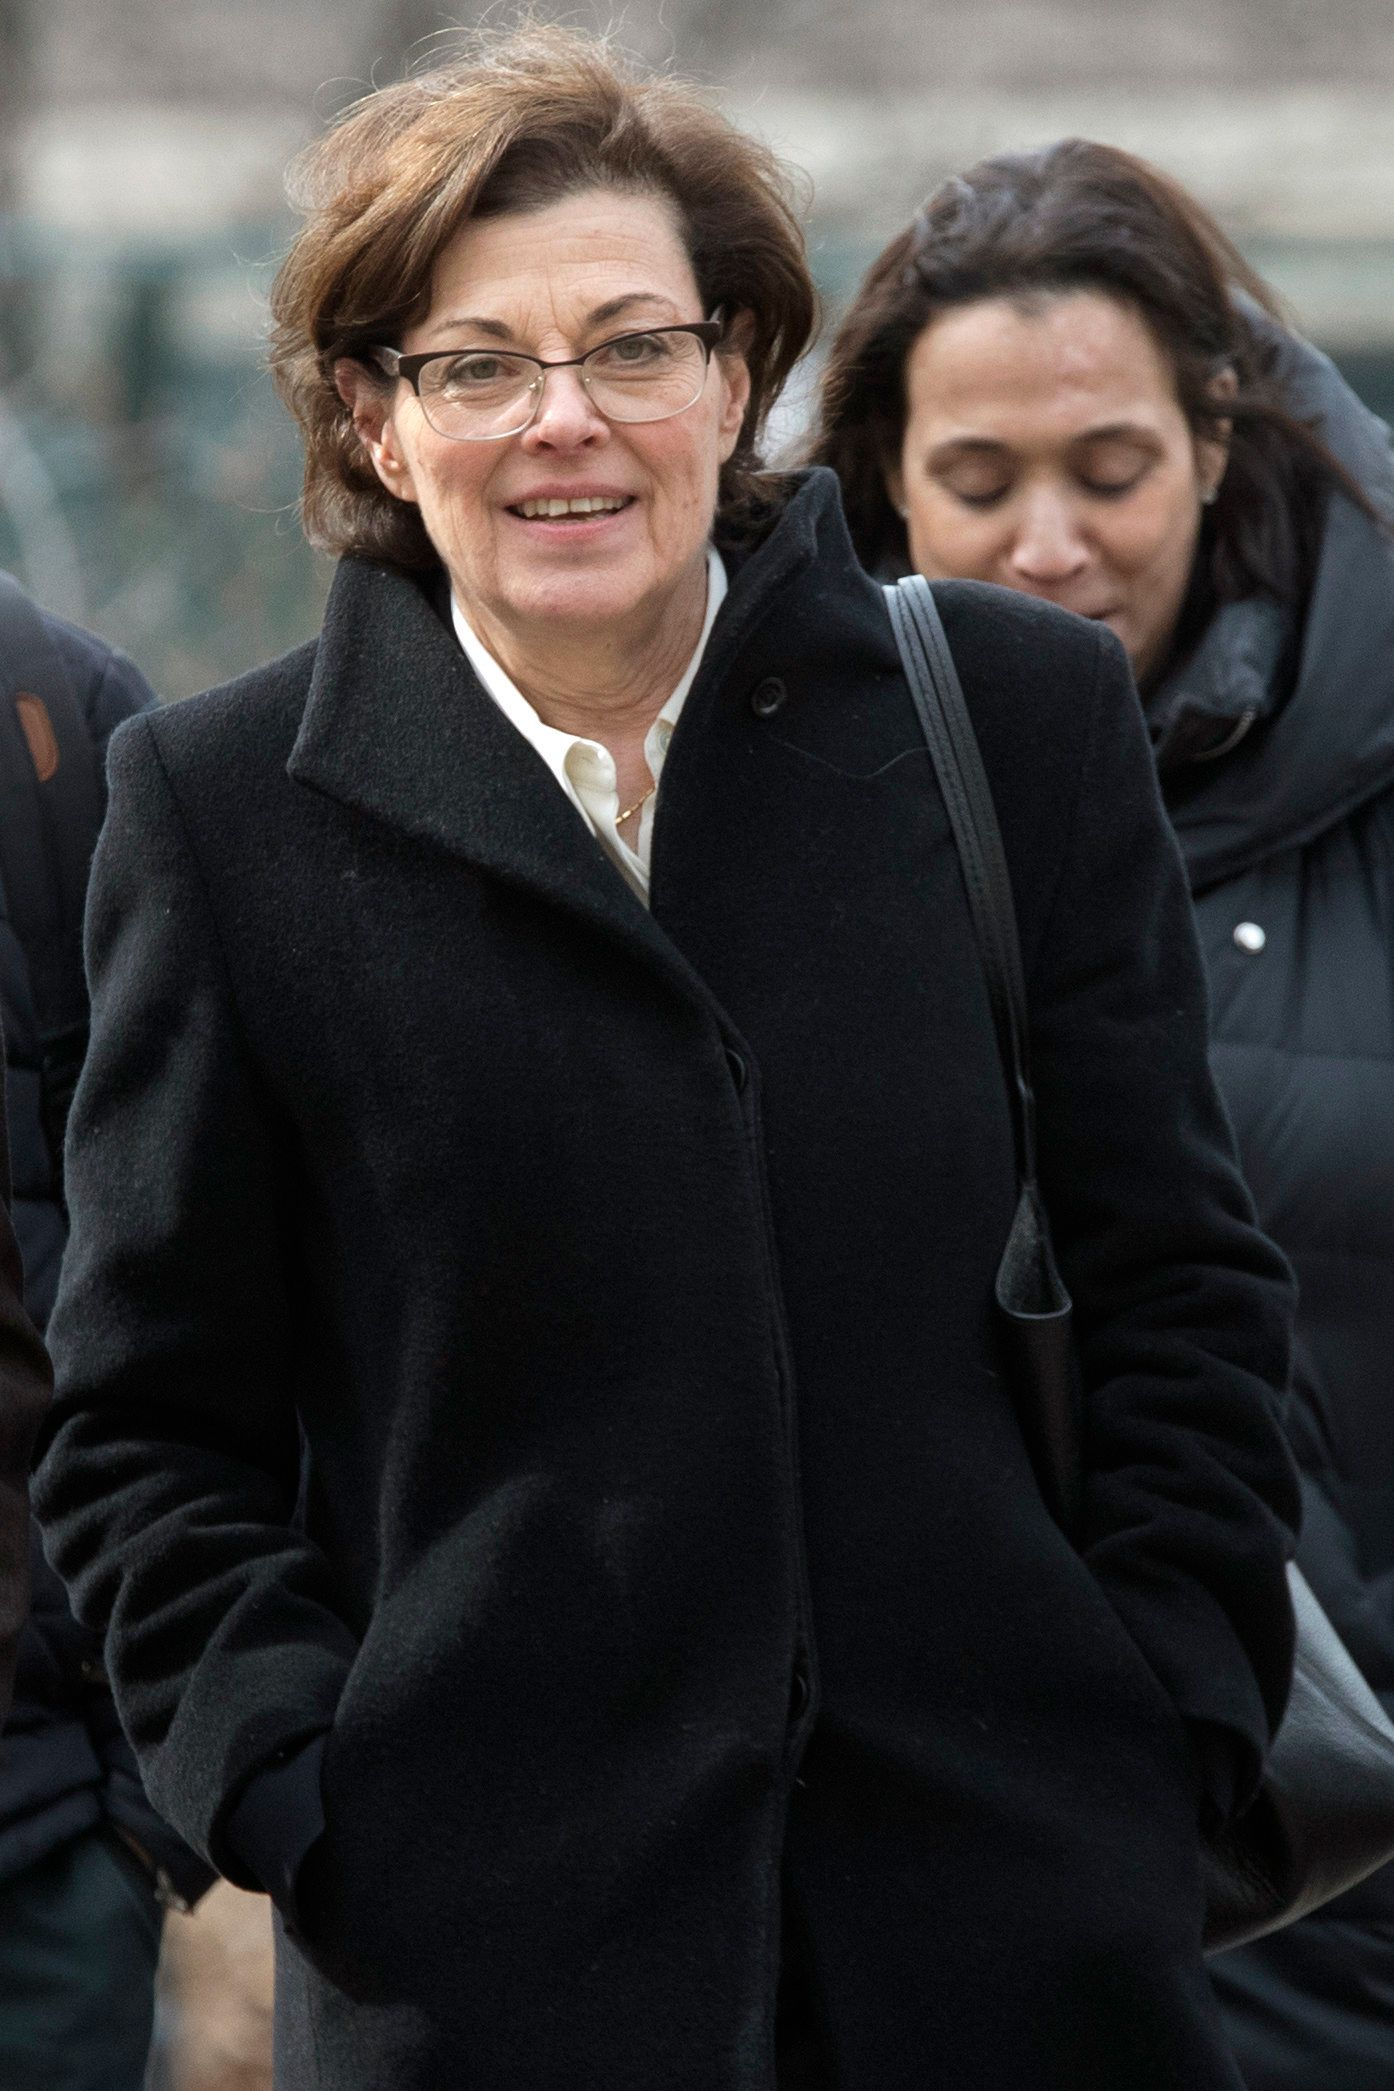 Nancy Salzman arrives at Brooklyn federal court, Wednesday, March 13, 2019, in New York. Salzman, a co-founder of NXIVM, an embattled upstate New York self-help organization, is expected to plead guilty in a case featuring sensational claims that some followers became branded sex slaves. (AP Photo/Mary Altaffer)